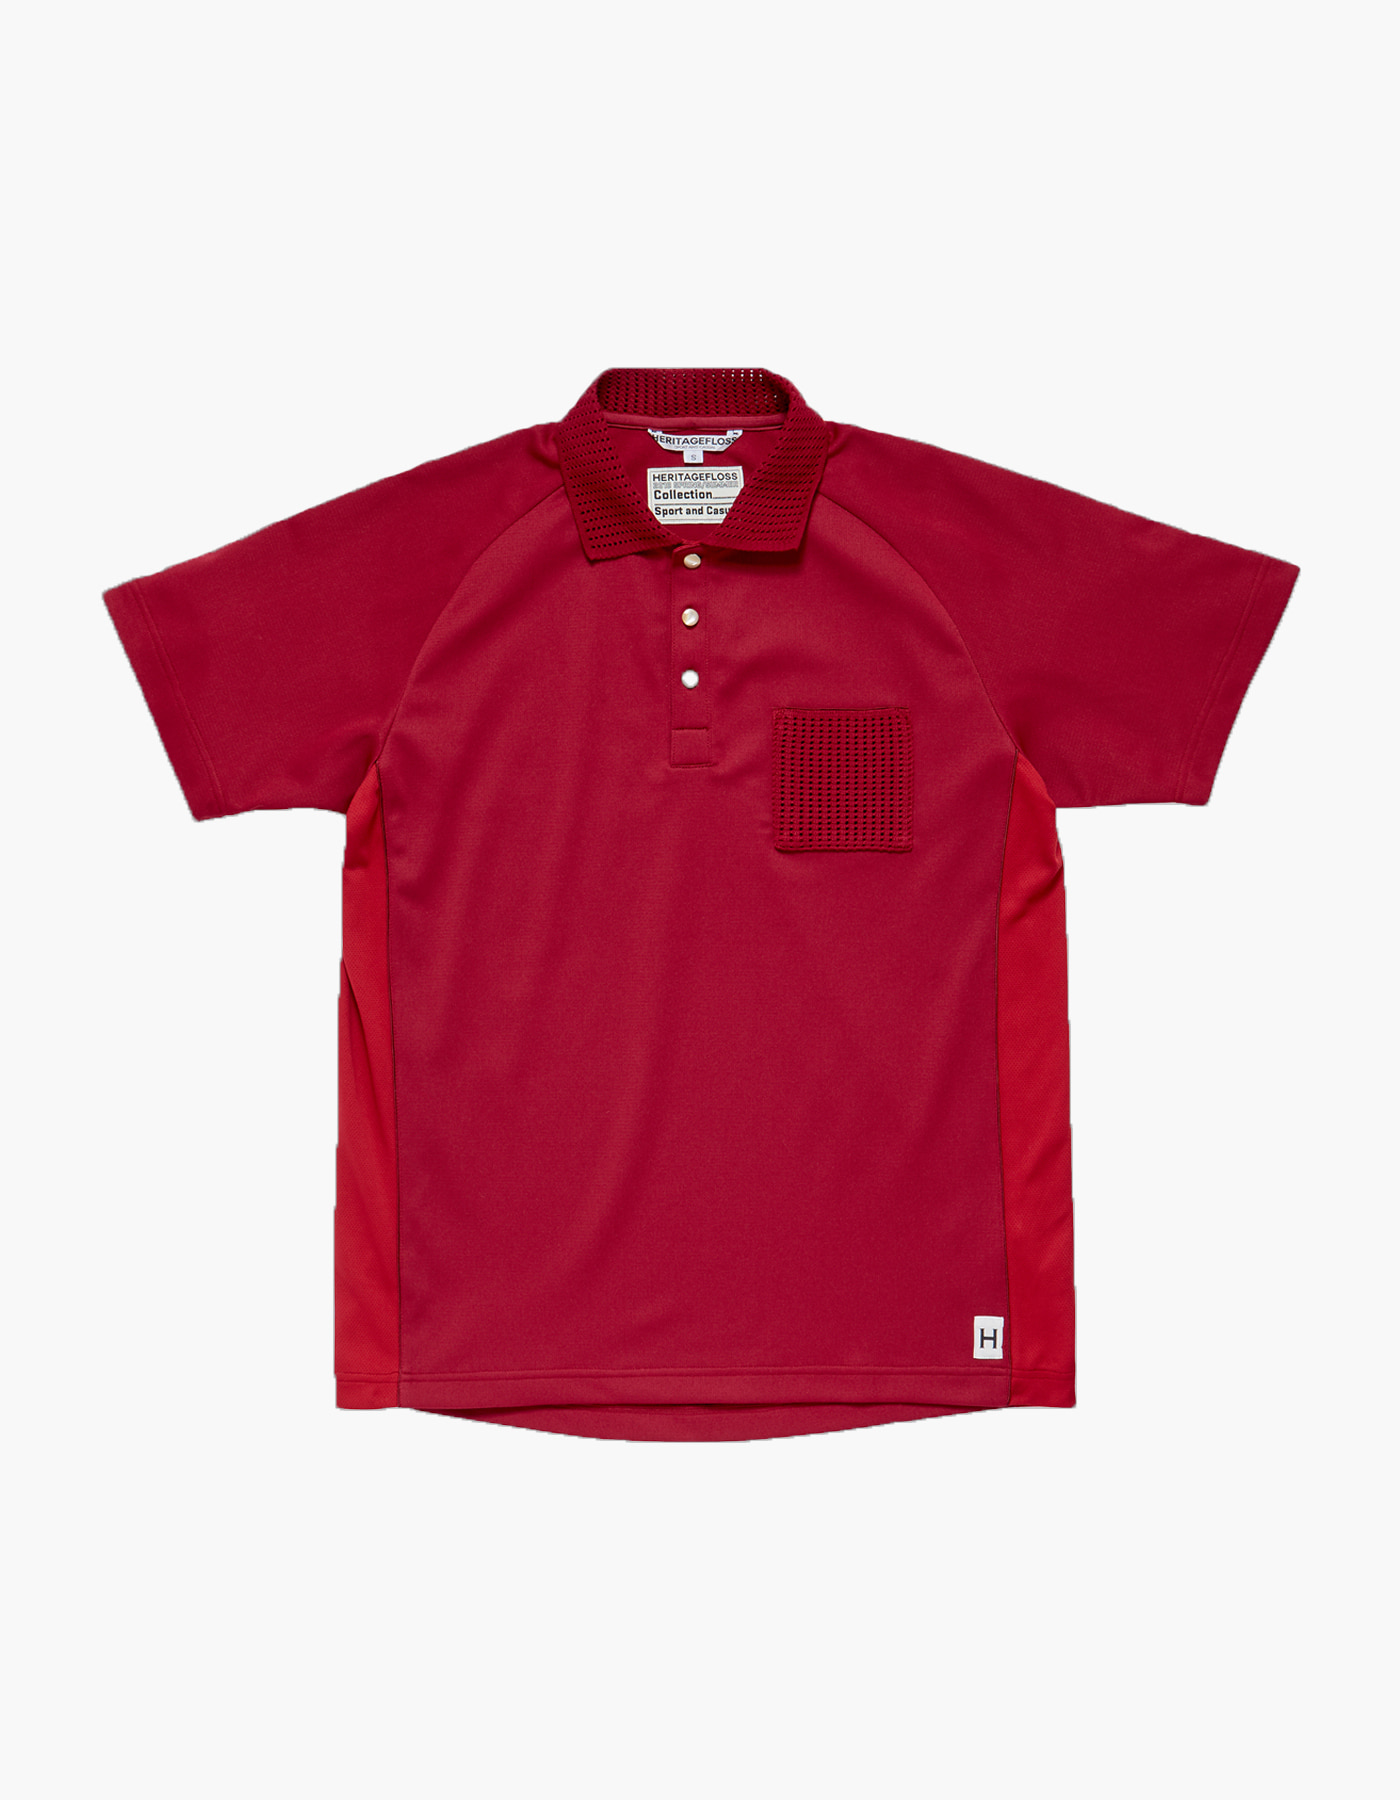 HFC CRICKET POLO SHIRTS / BURGUNDY